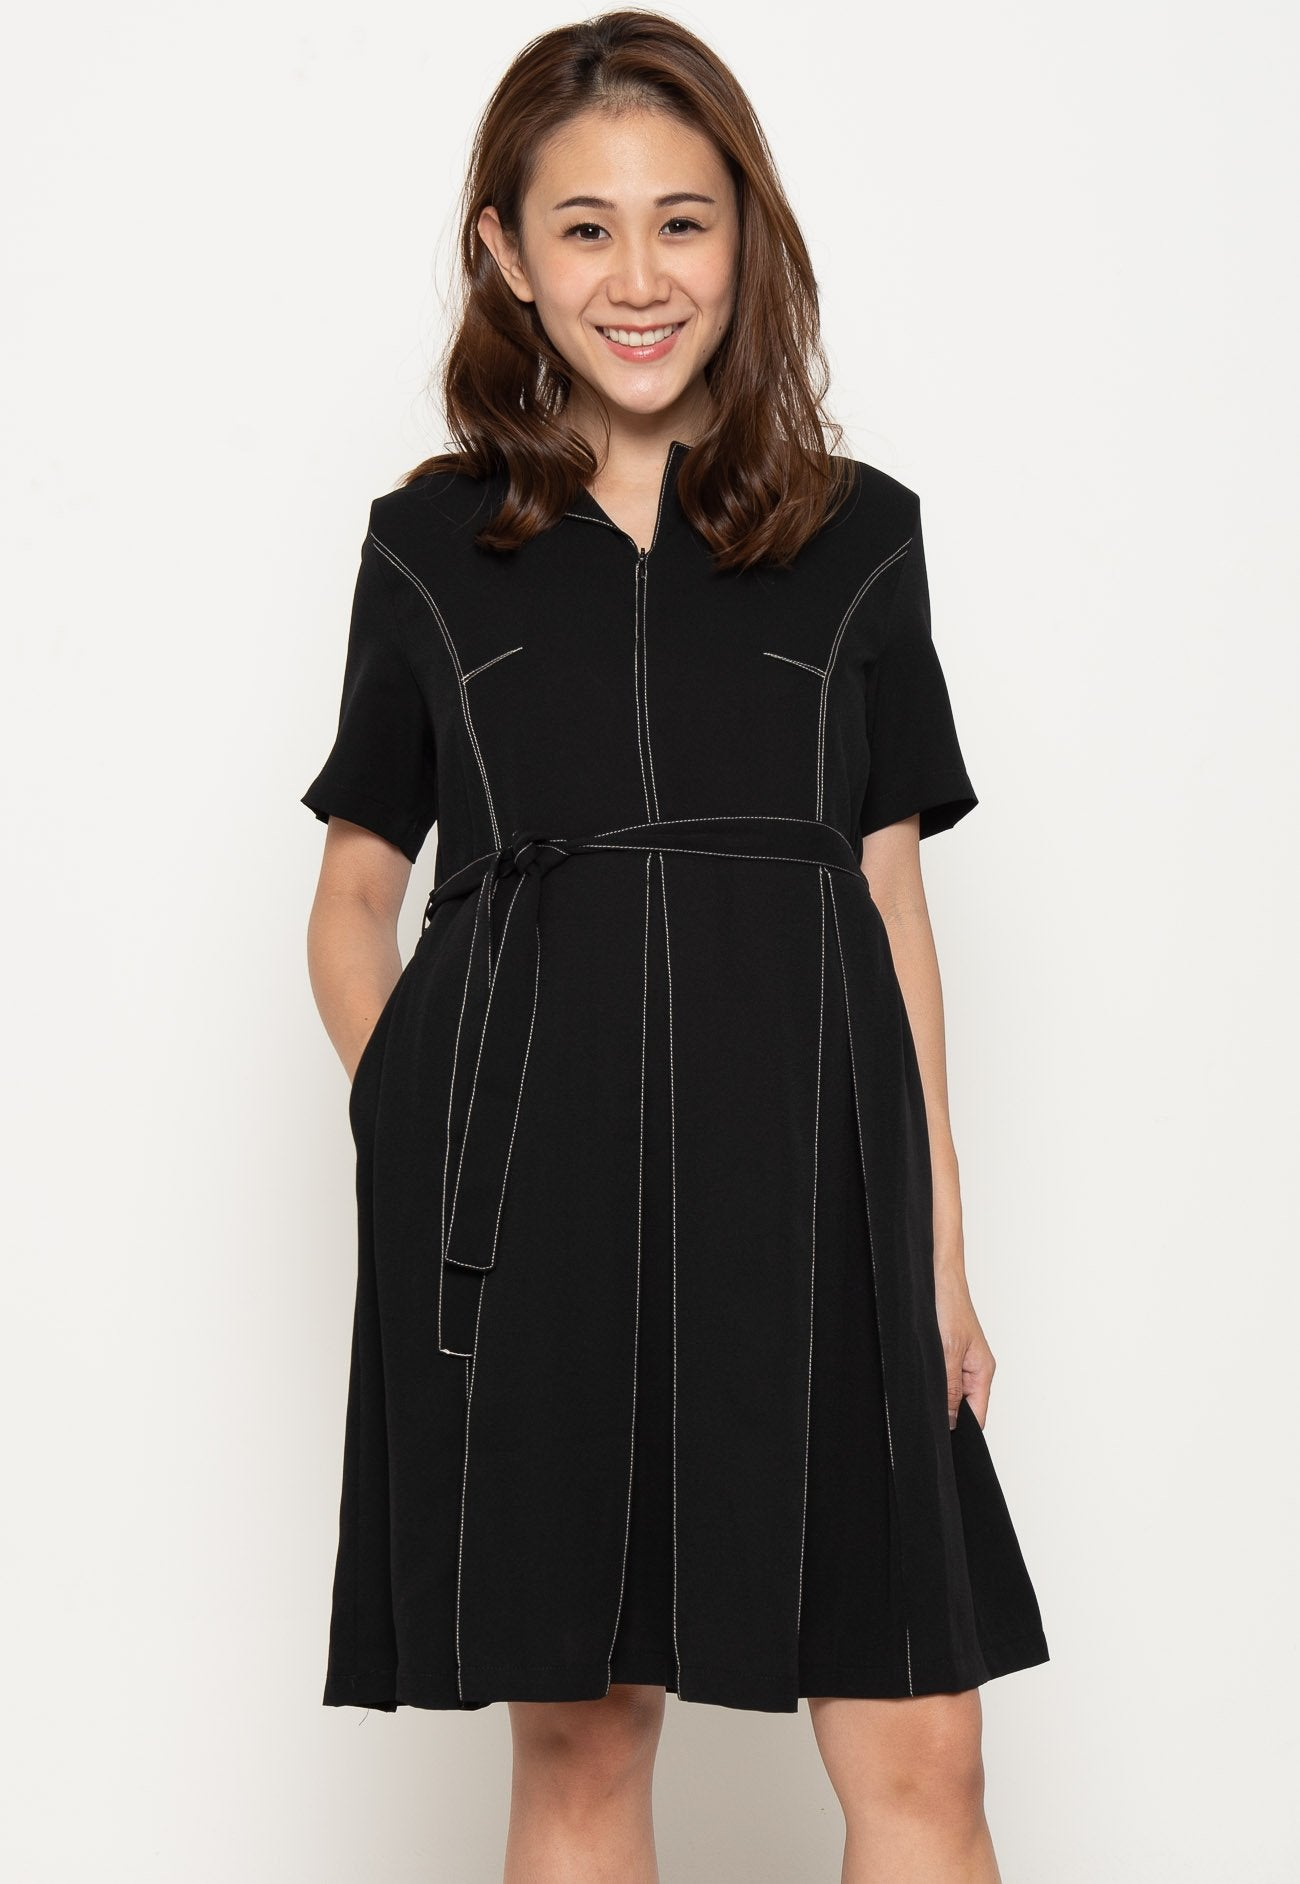 Another Work Day Nursing Dress in Black  by Jump Eat Cry - Maternity and nursing wear